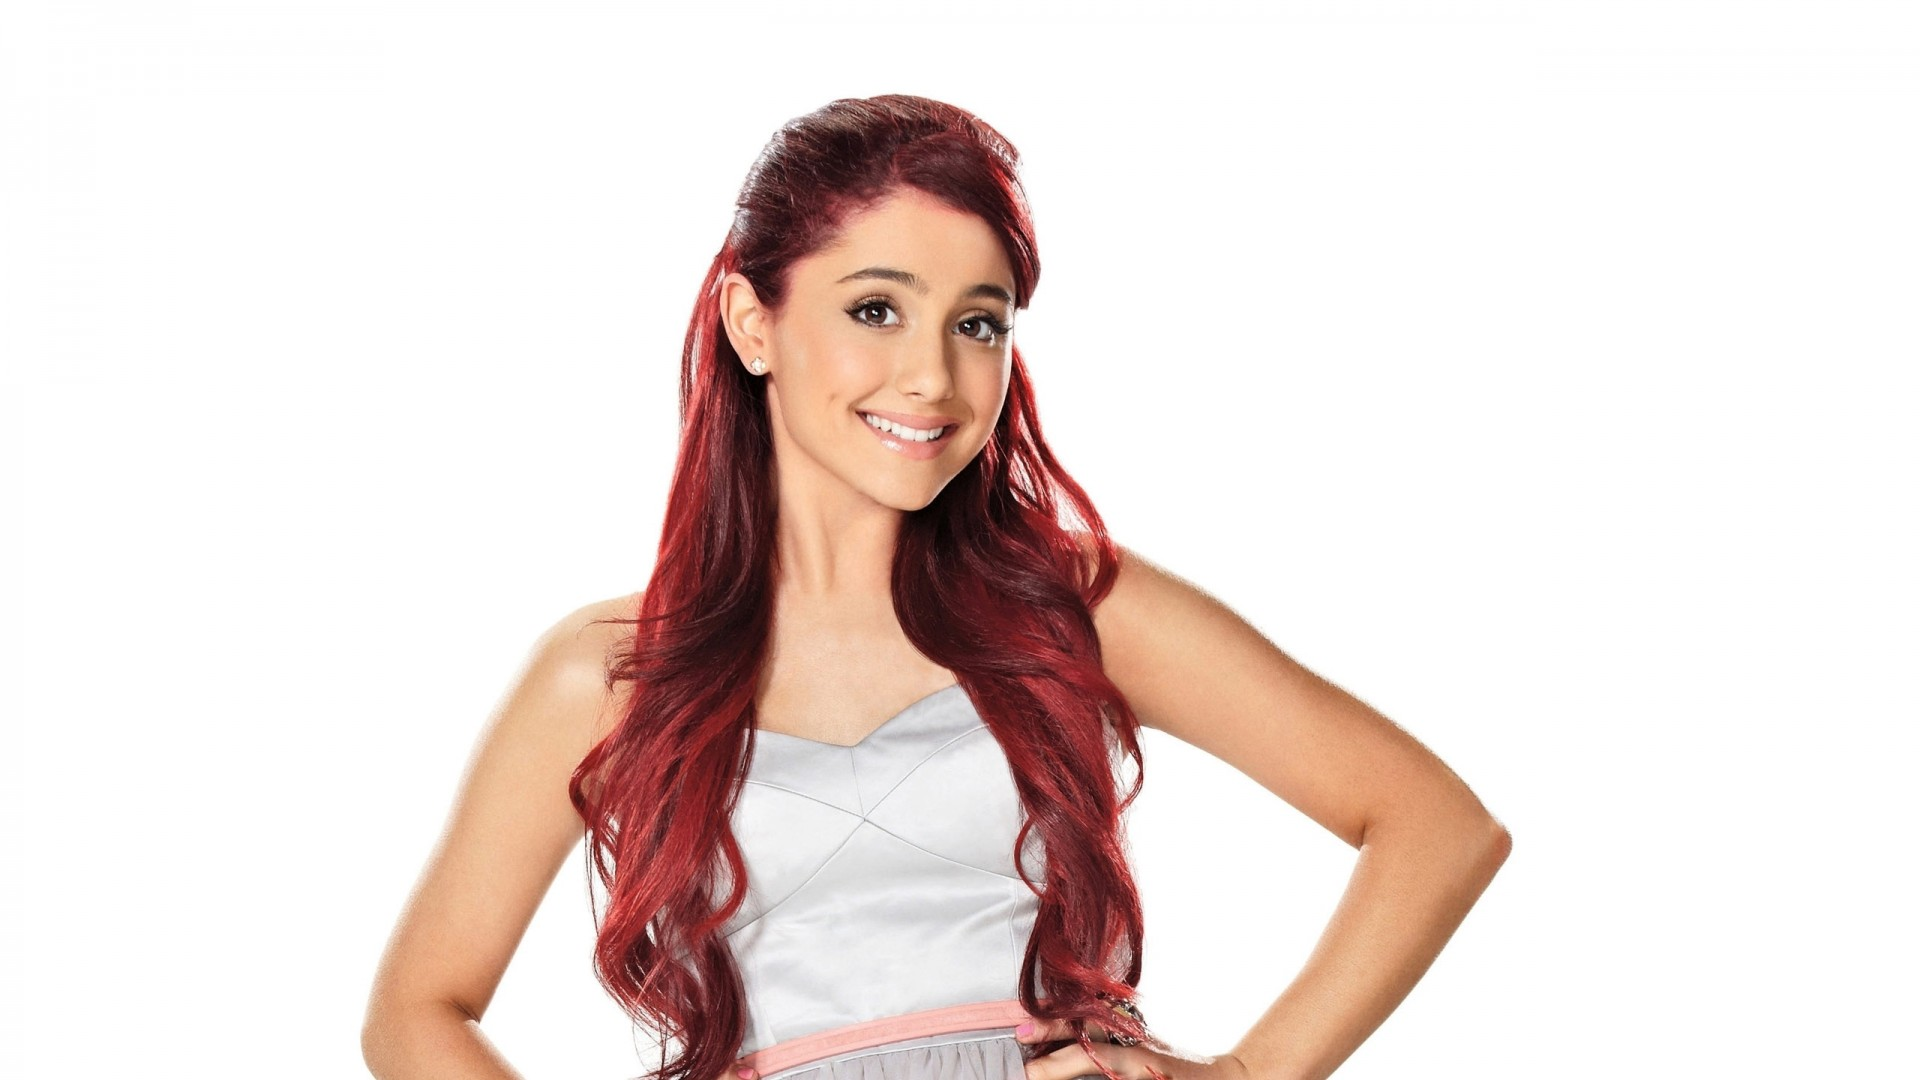 Daisy Iphone Wallpaper Ariana Grande Hd Wallpapers Hd Wallpapers Id 17163